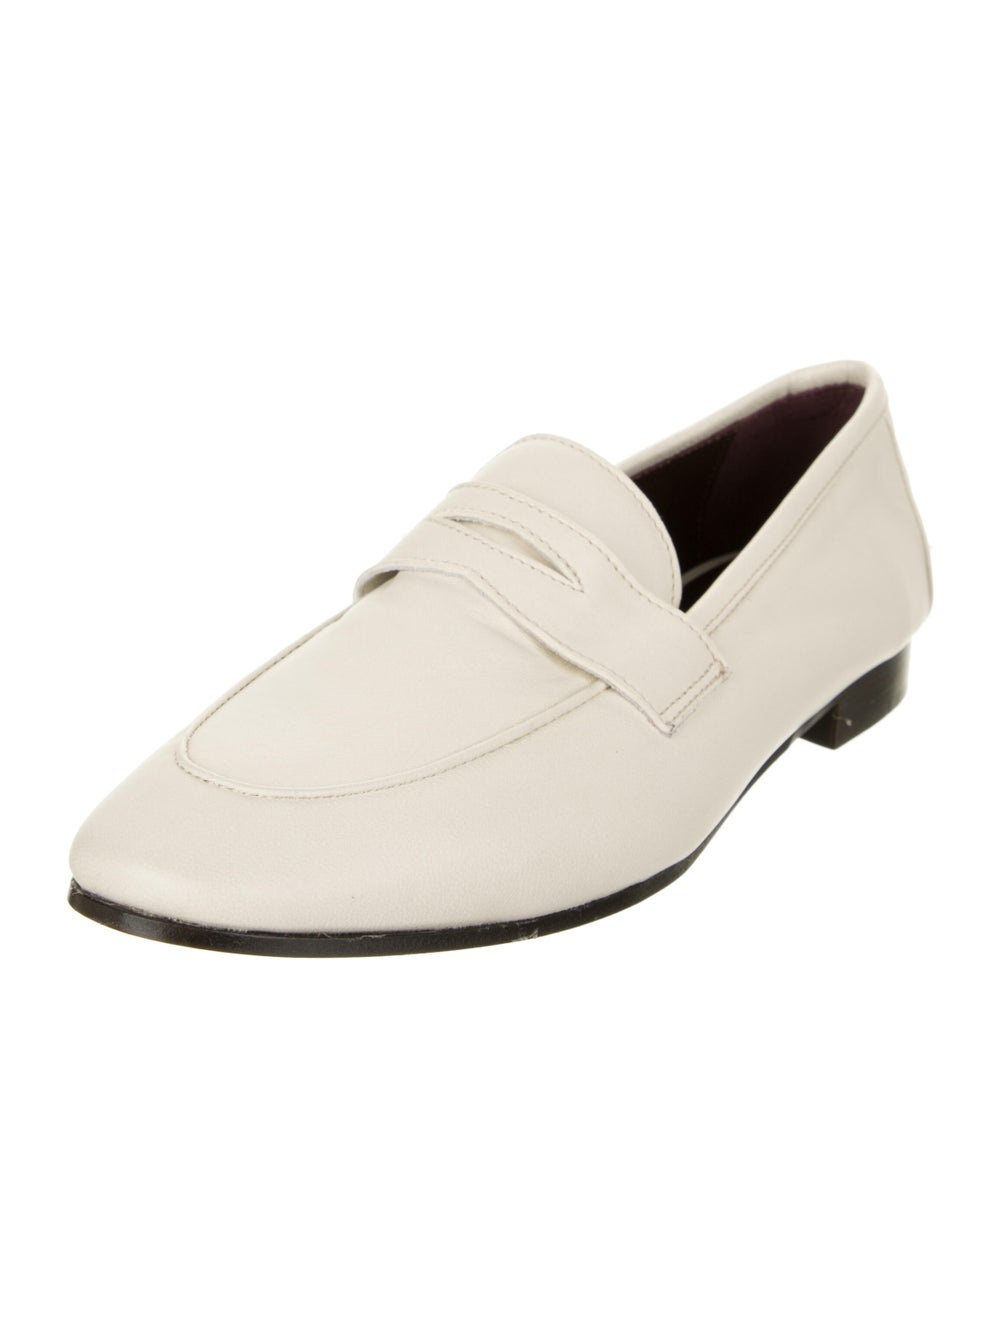 Bougeotte Loafers - image 2